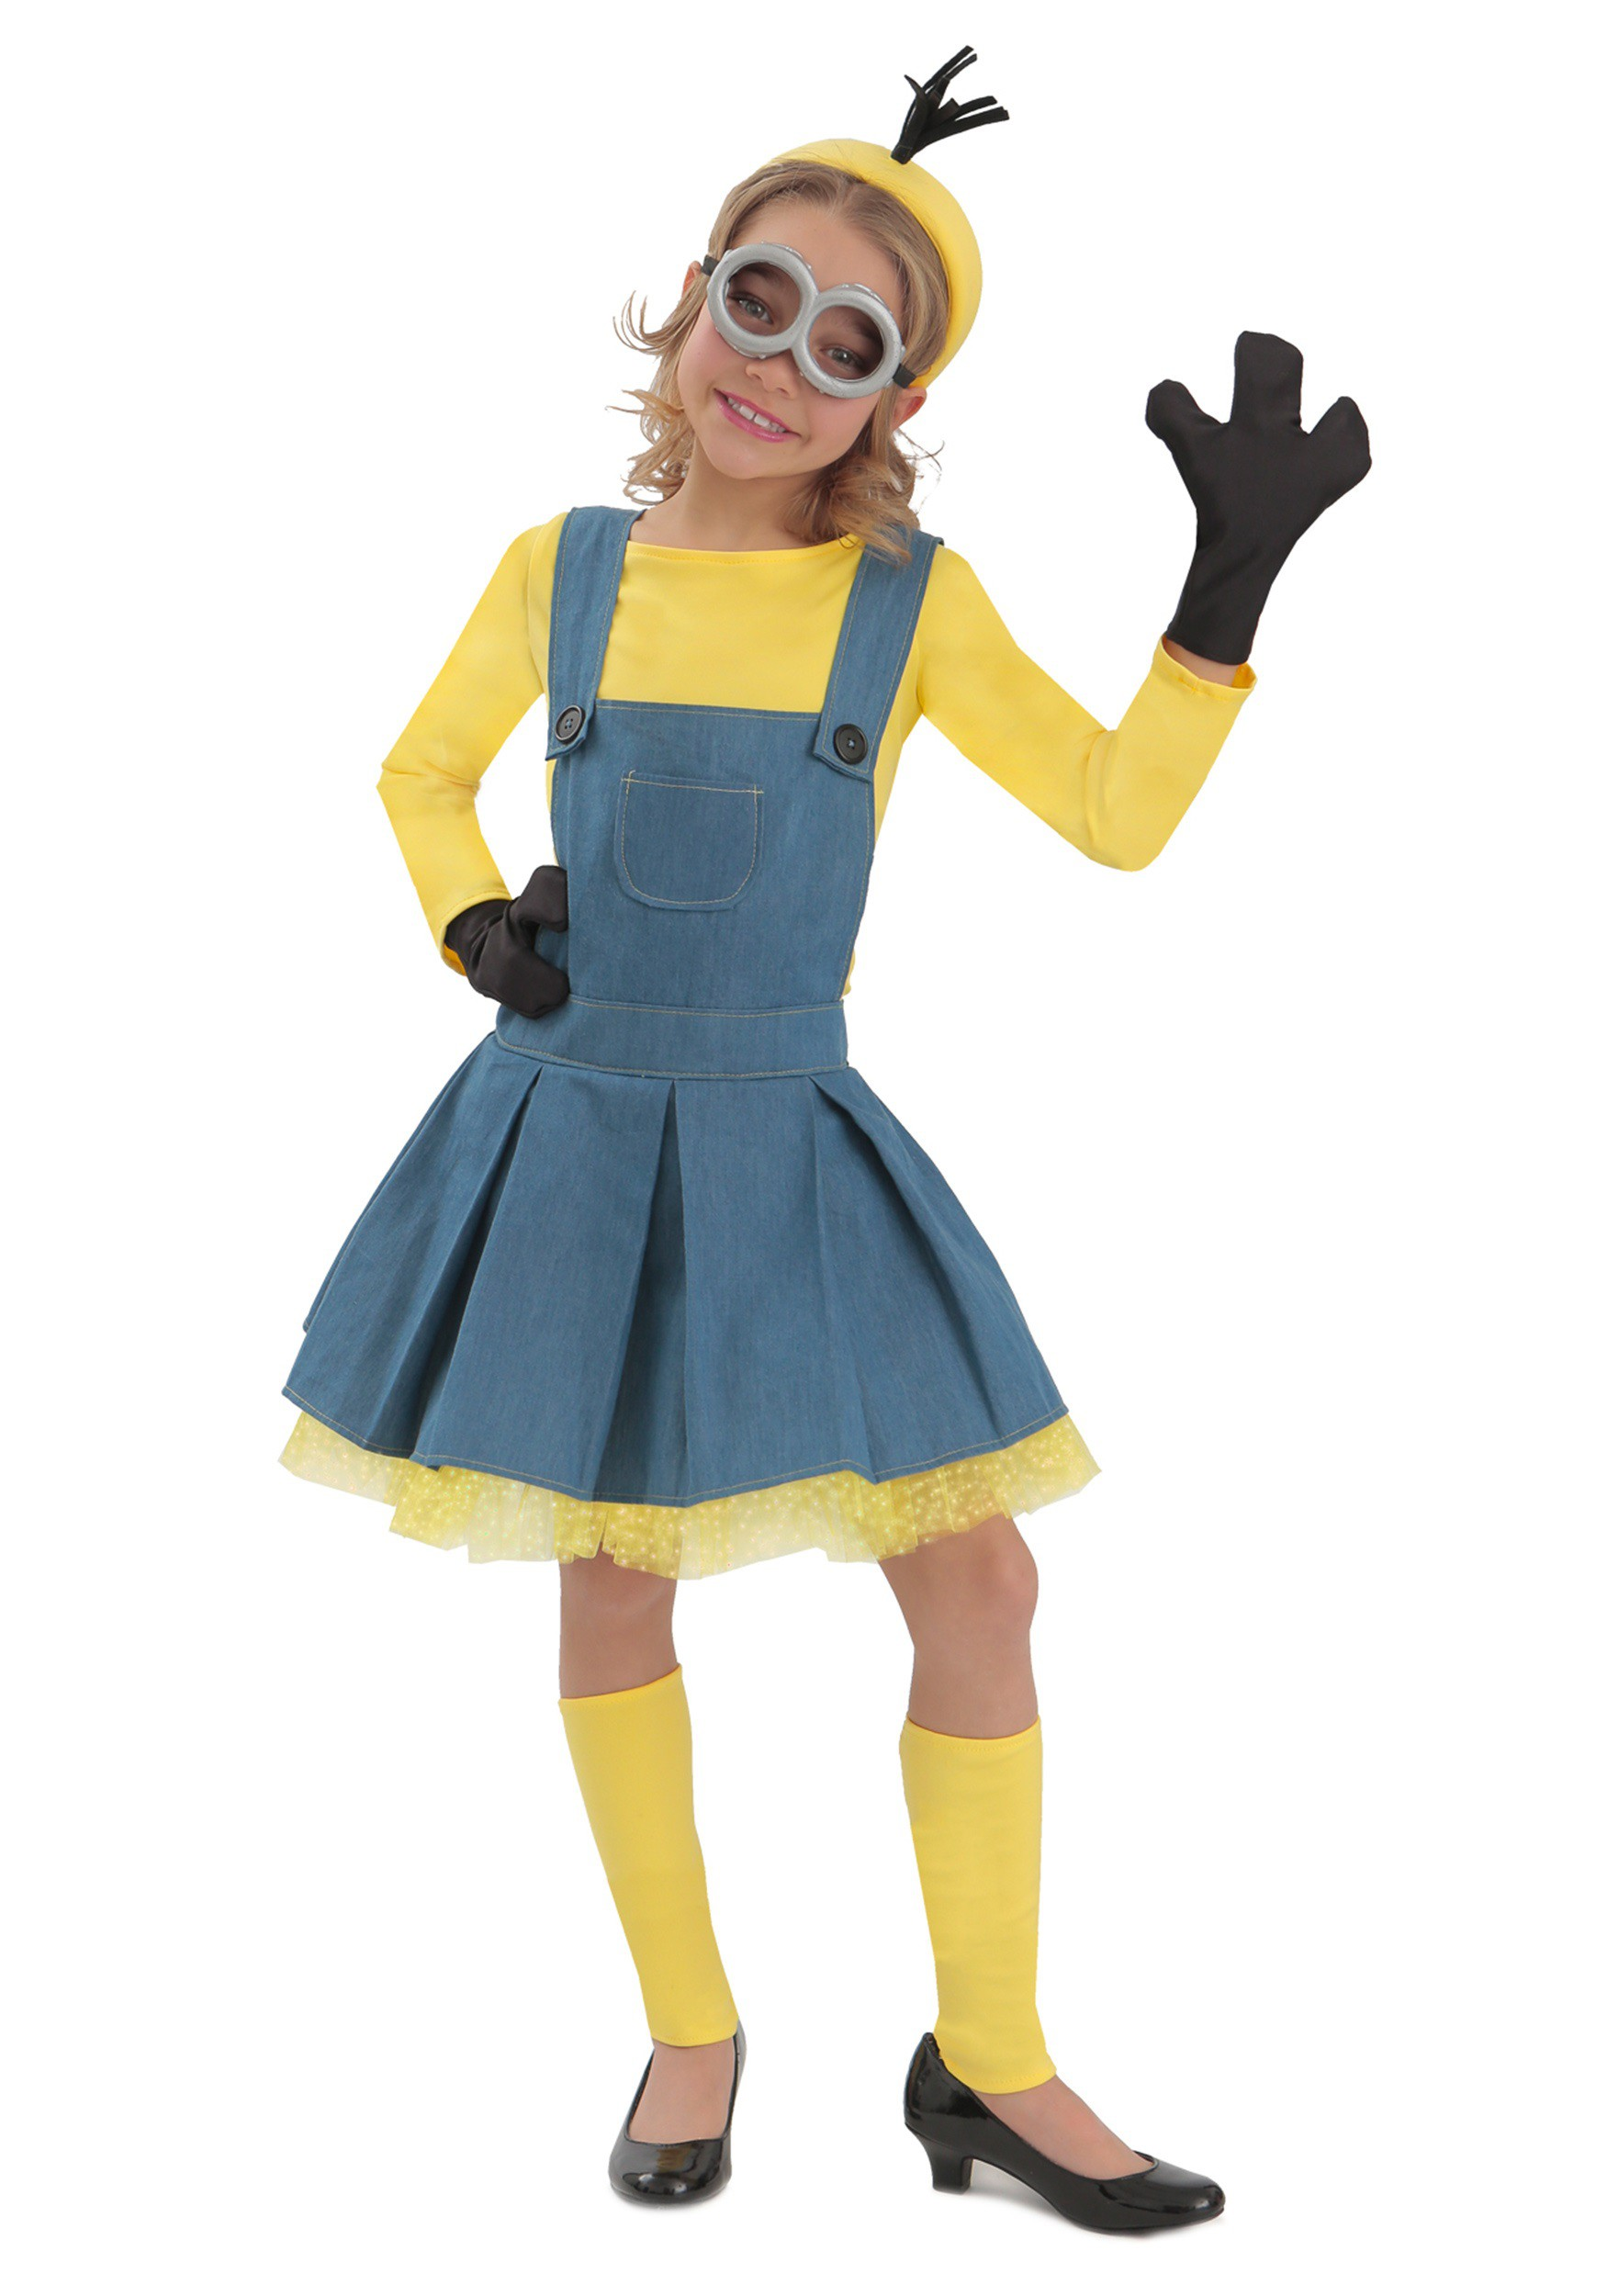 sc 1 st  Halloween Costumes : minion toddler girl costume  - Germanpascual.Com